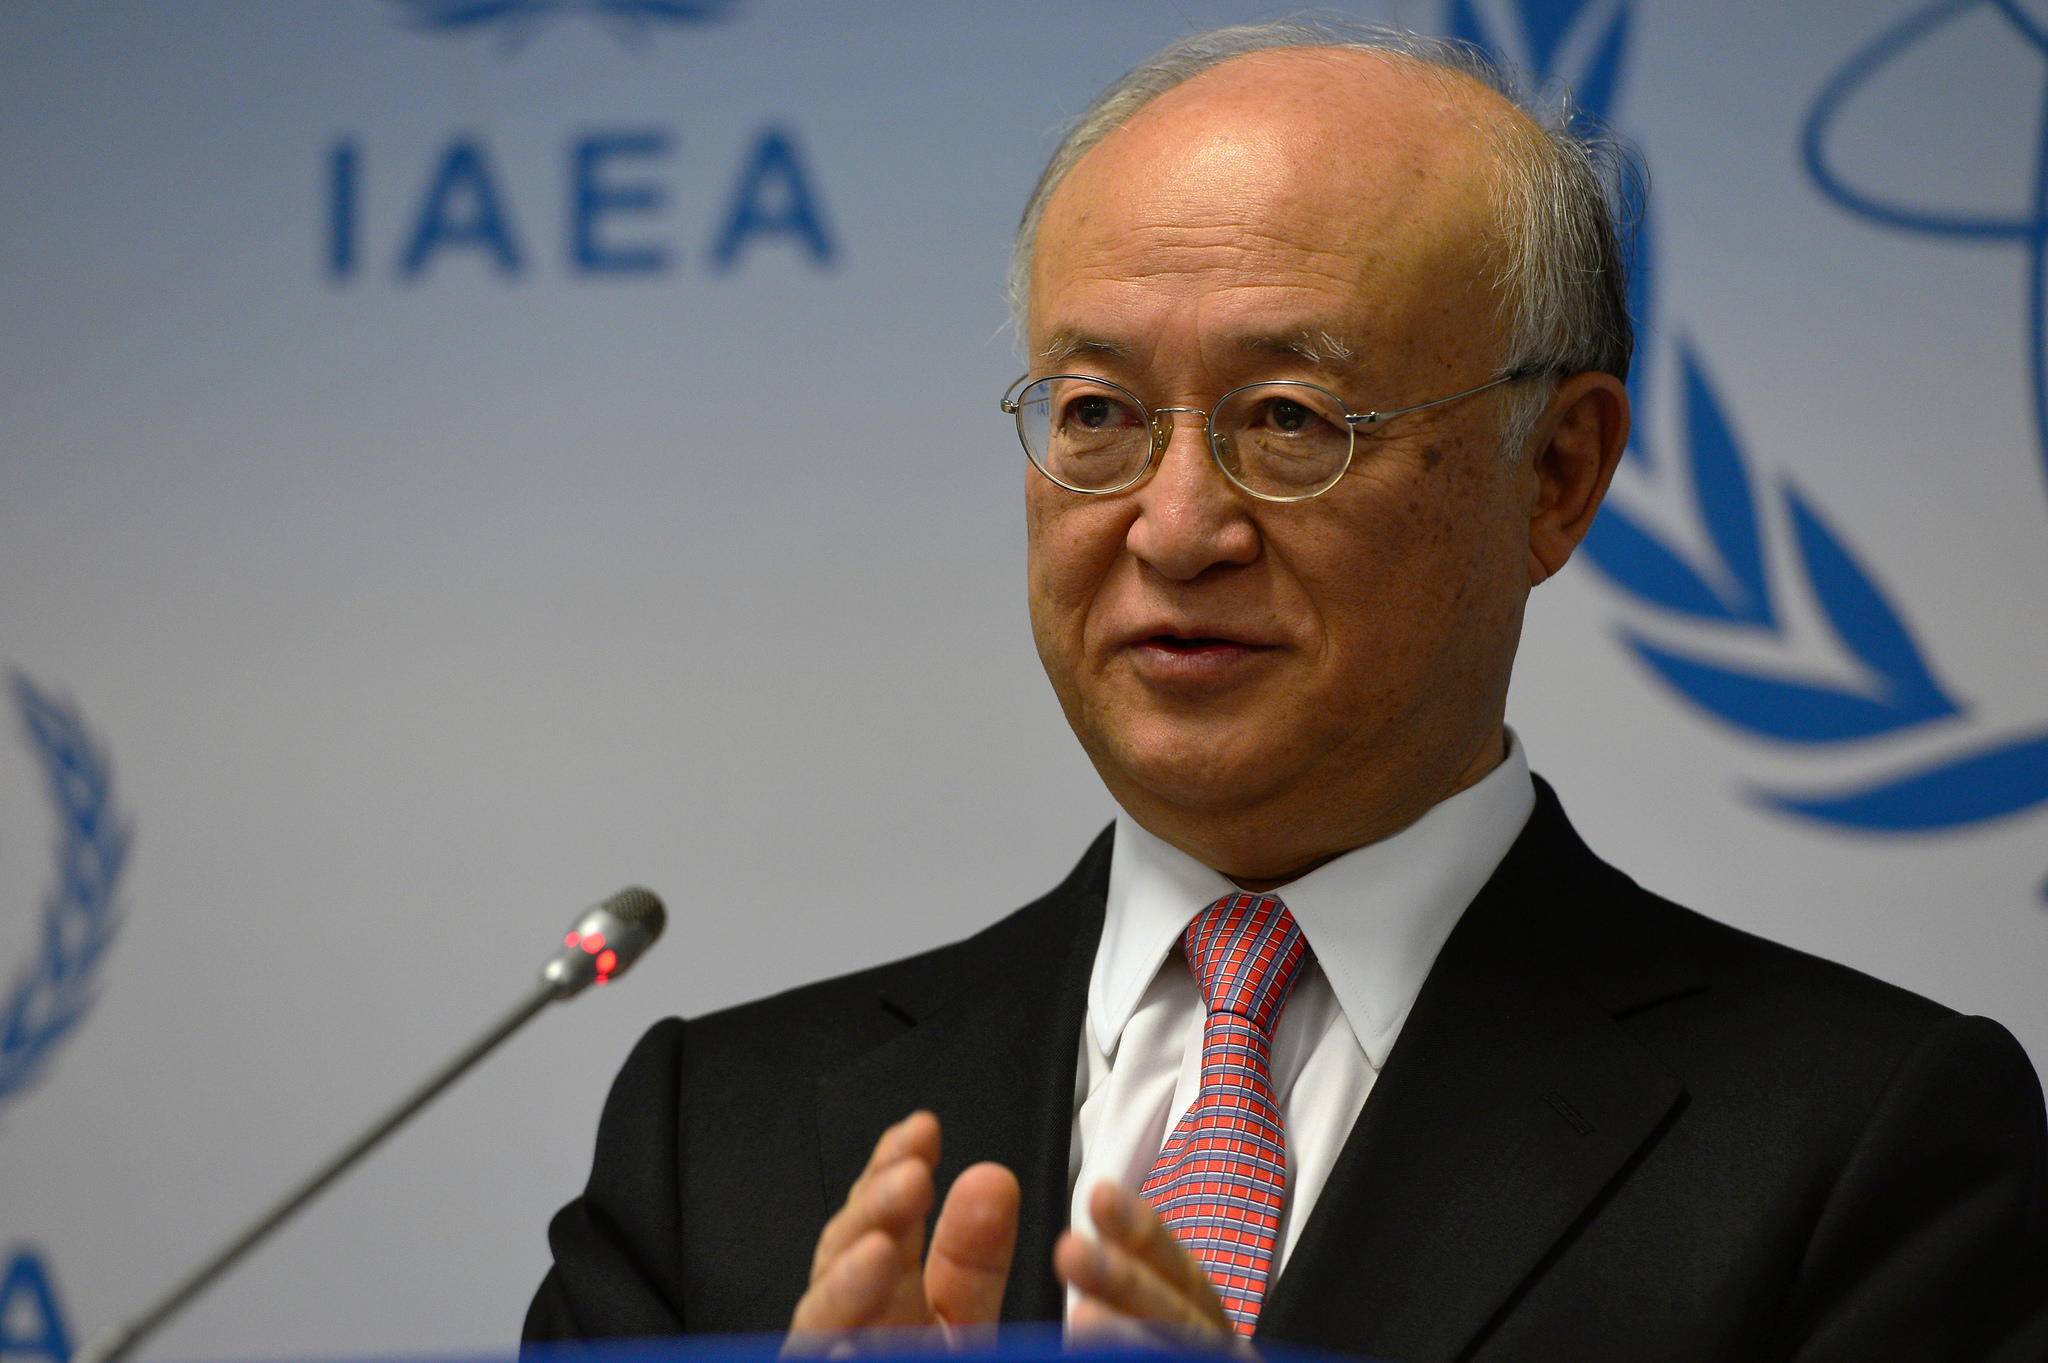 IAEA Director General Yukiya Amano briefs members of the media at a press conference held during the 1425th Board of Governors meeting at the Agency headquarters in Vienna, Austria. 15 December 2015 [Photo Credit: Dean Calma / IAEA]